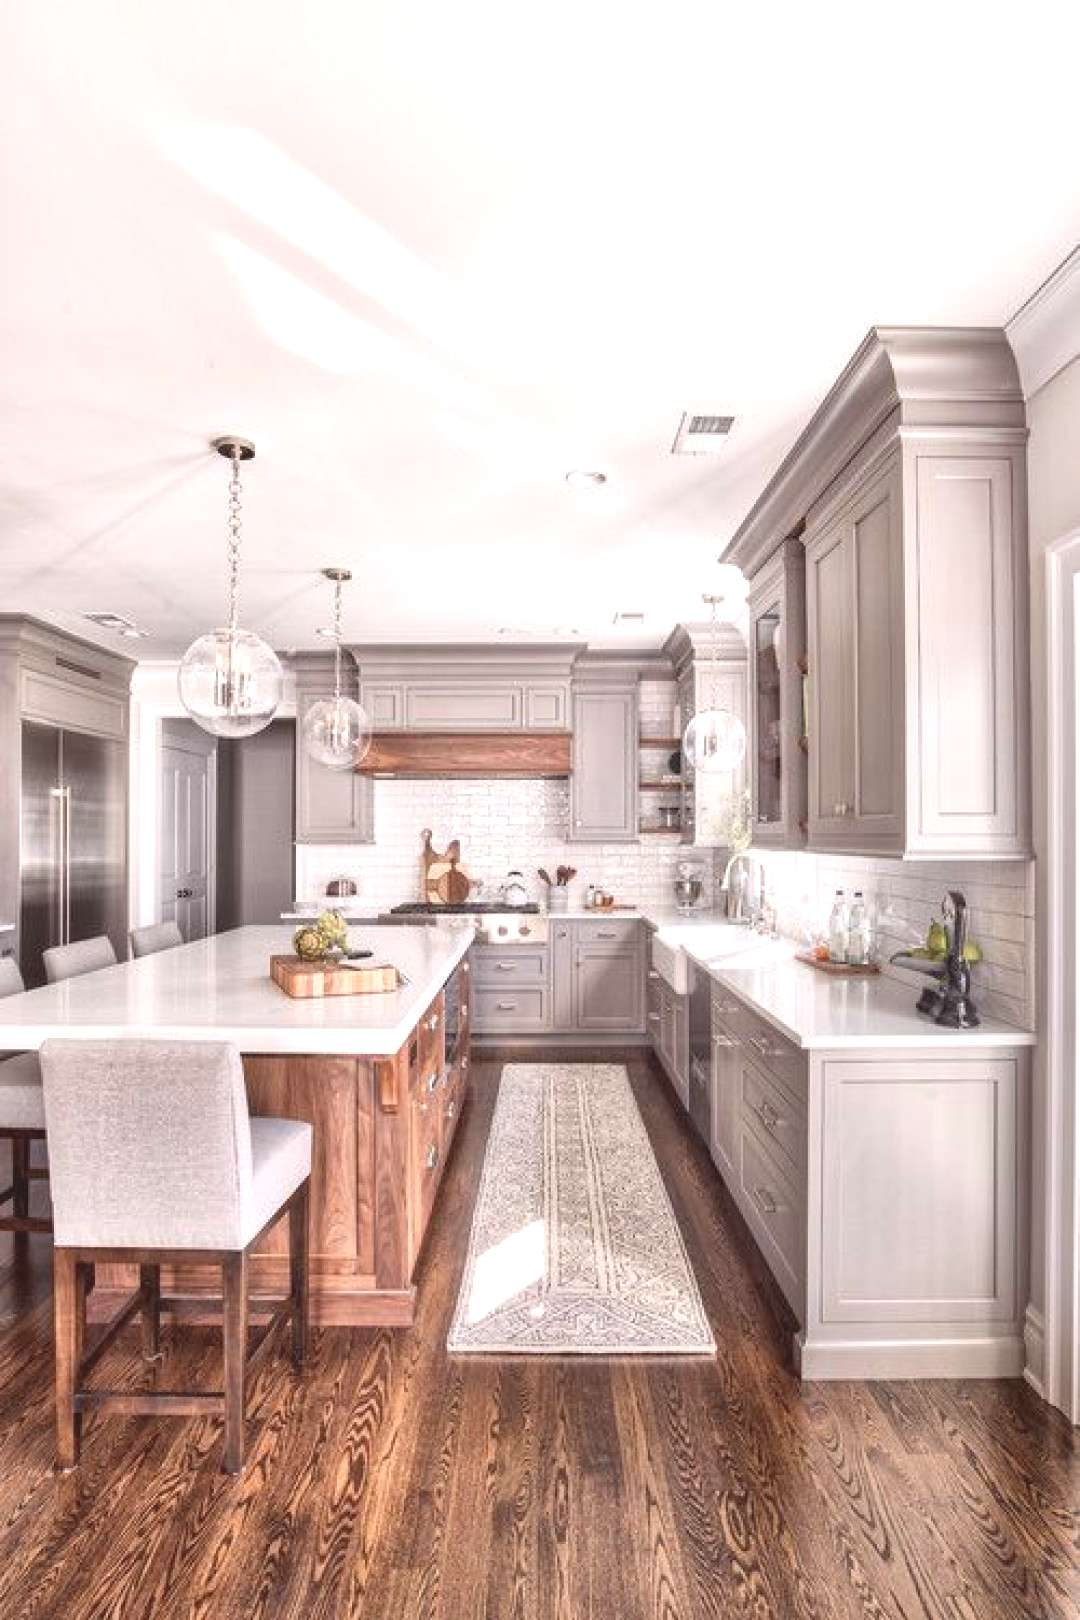 How to Pick Paint Colors for Kitchen Cabinets - Painted Furniture Ideas -